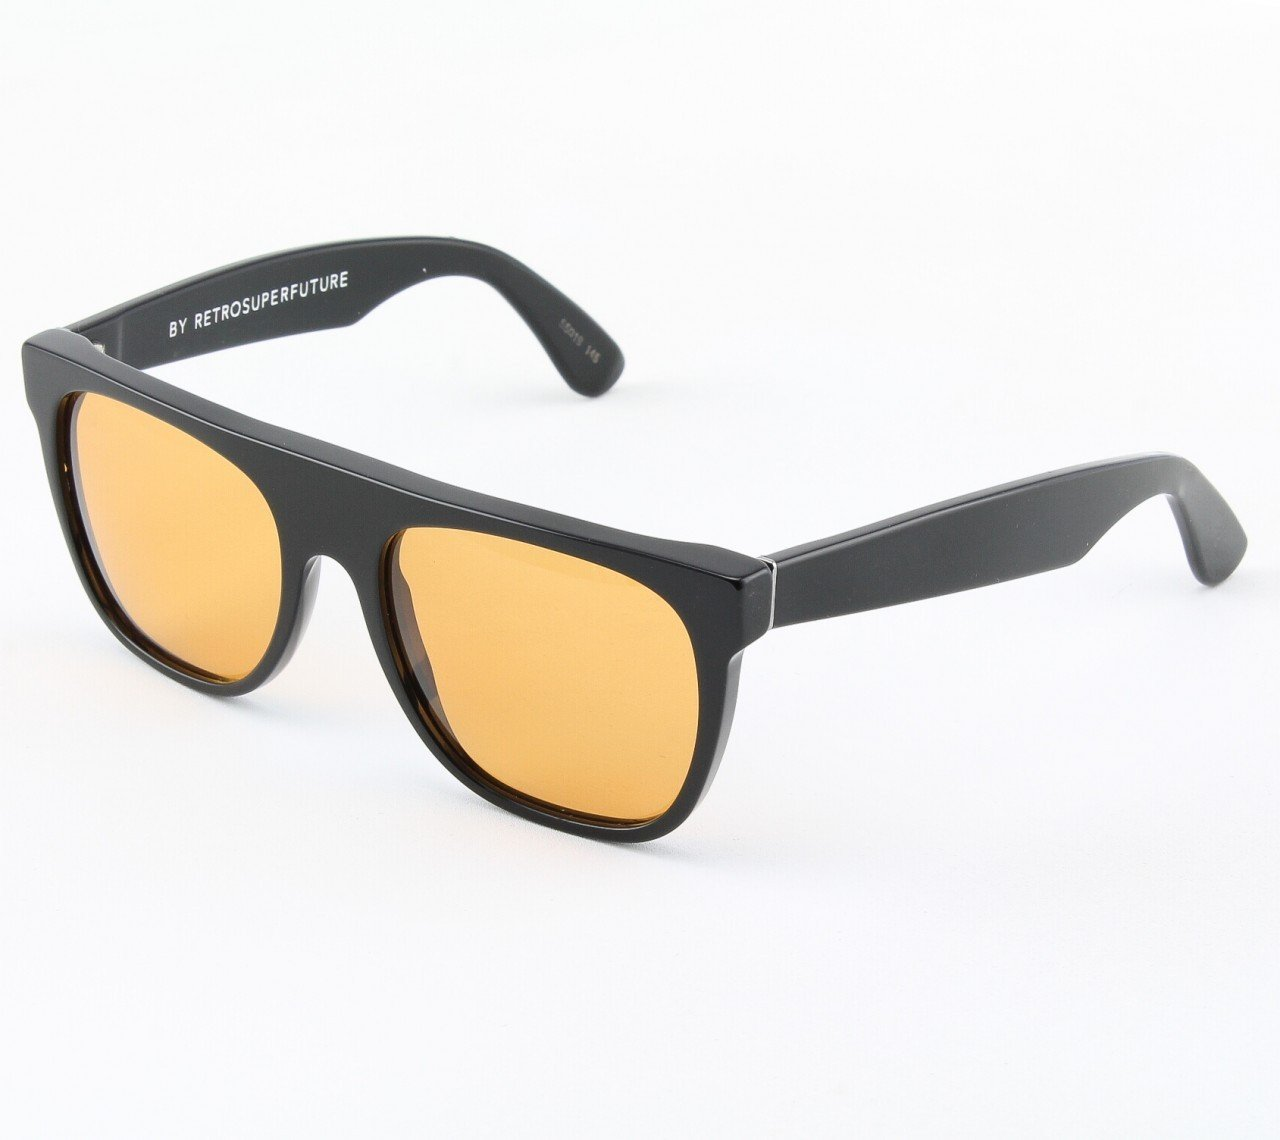 Super Flat Top 581/2T Sunglasses Black with Yellow Zeiss Lenses by RETROSUPERFUTURE